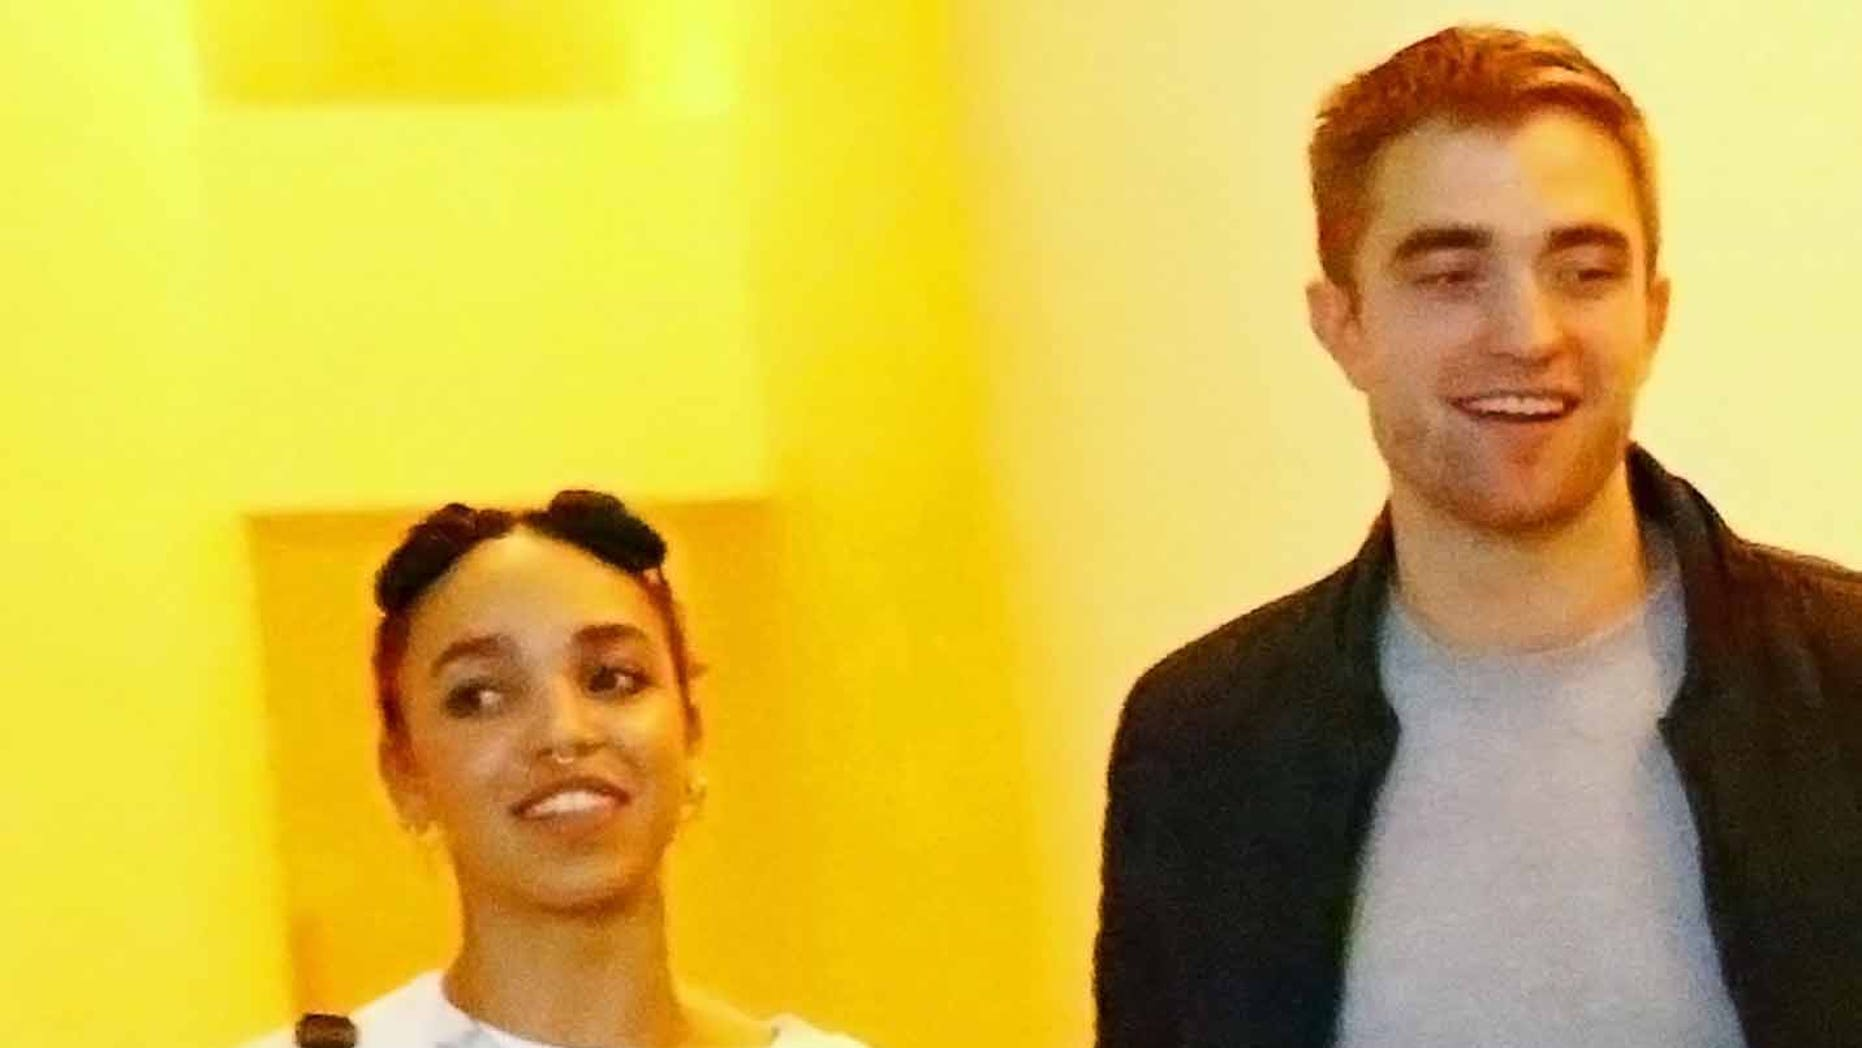 MIAMI, FL - DECEMBER 04:  (L-R) Singer FKA Twigs and Robert Pattinson attend a Surface Magazine Event With Hans Ulrich Obrist And FKA Twigs at Edition Hotel on December 4, 2014 in Miami, Florida.  (Photo by Astrid Stawiarz/Getty Images for Surface)